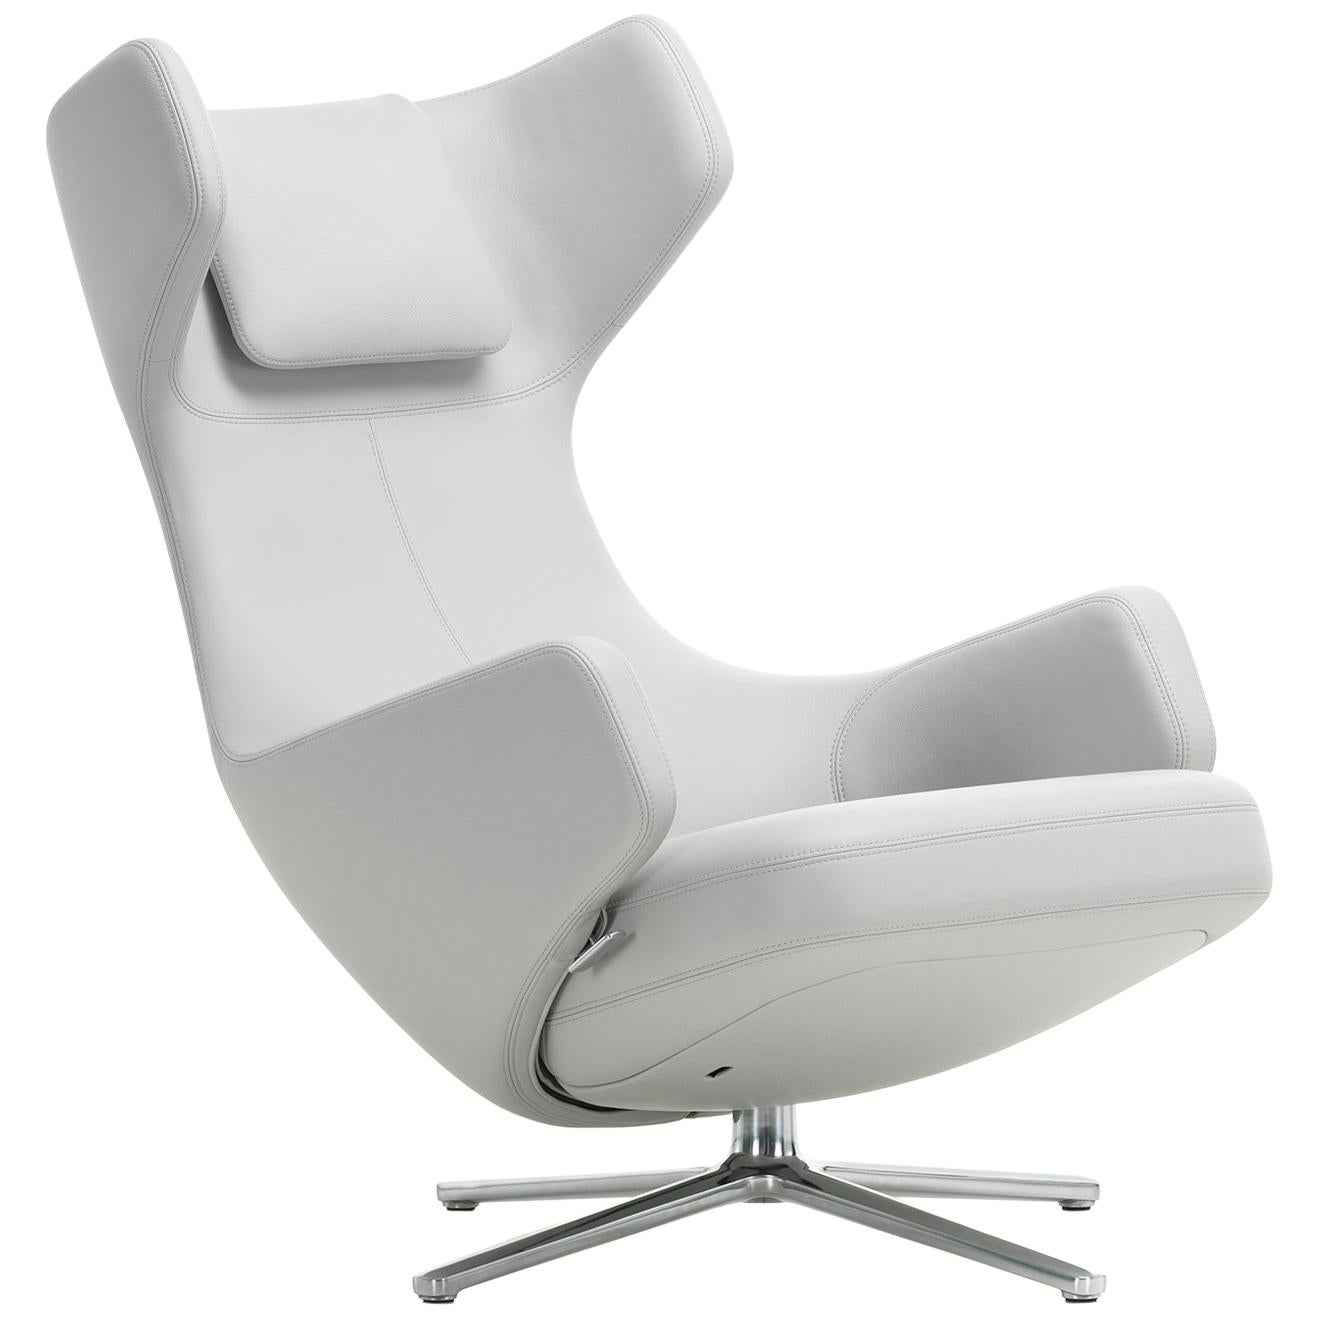 Vitra Grand Repos Vitra Grand Repos Lounge Chair In Snow Leather By Antonio Citterio